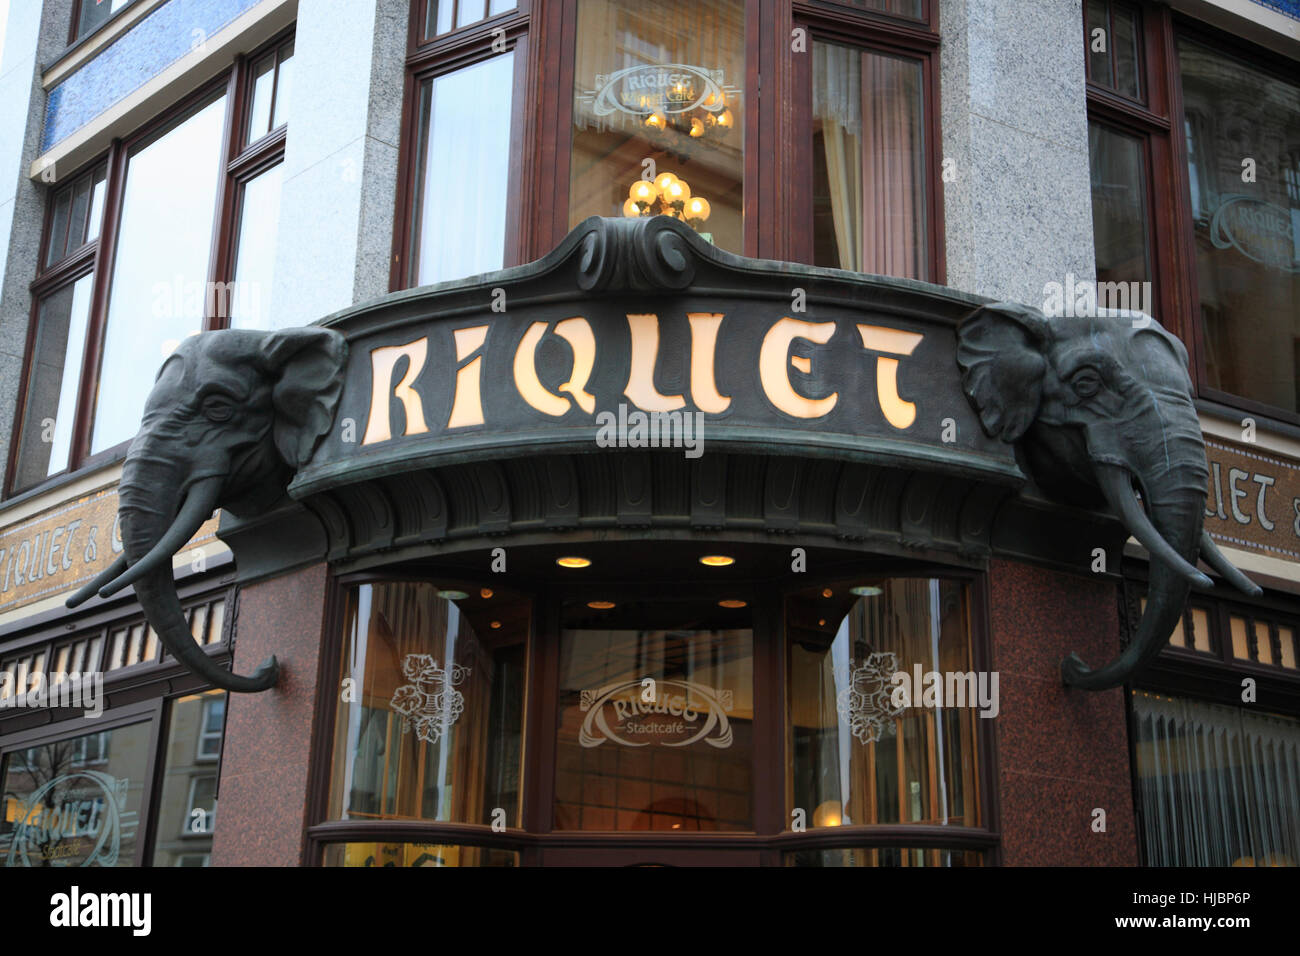 Cafe RIQUET, Leipzig, Saxony, Germany, Europe - Stock Image